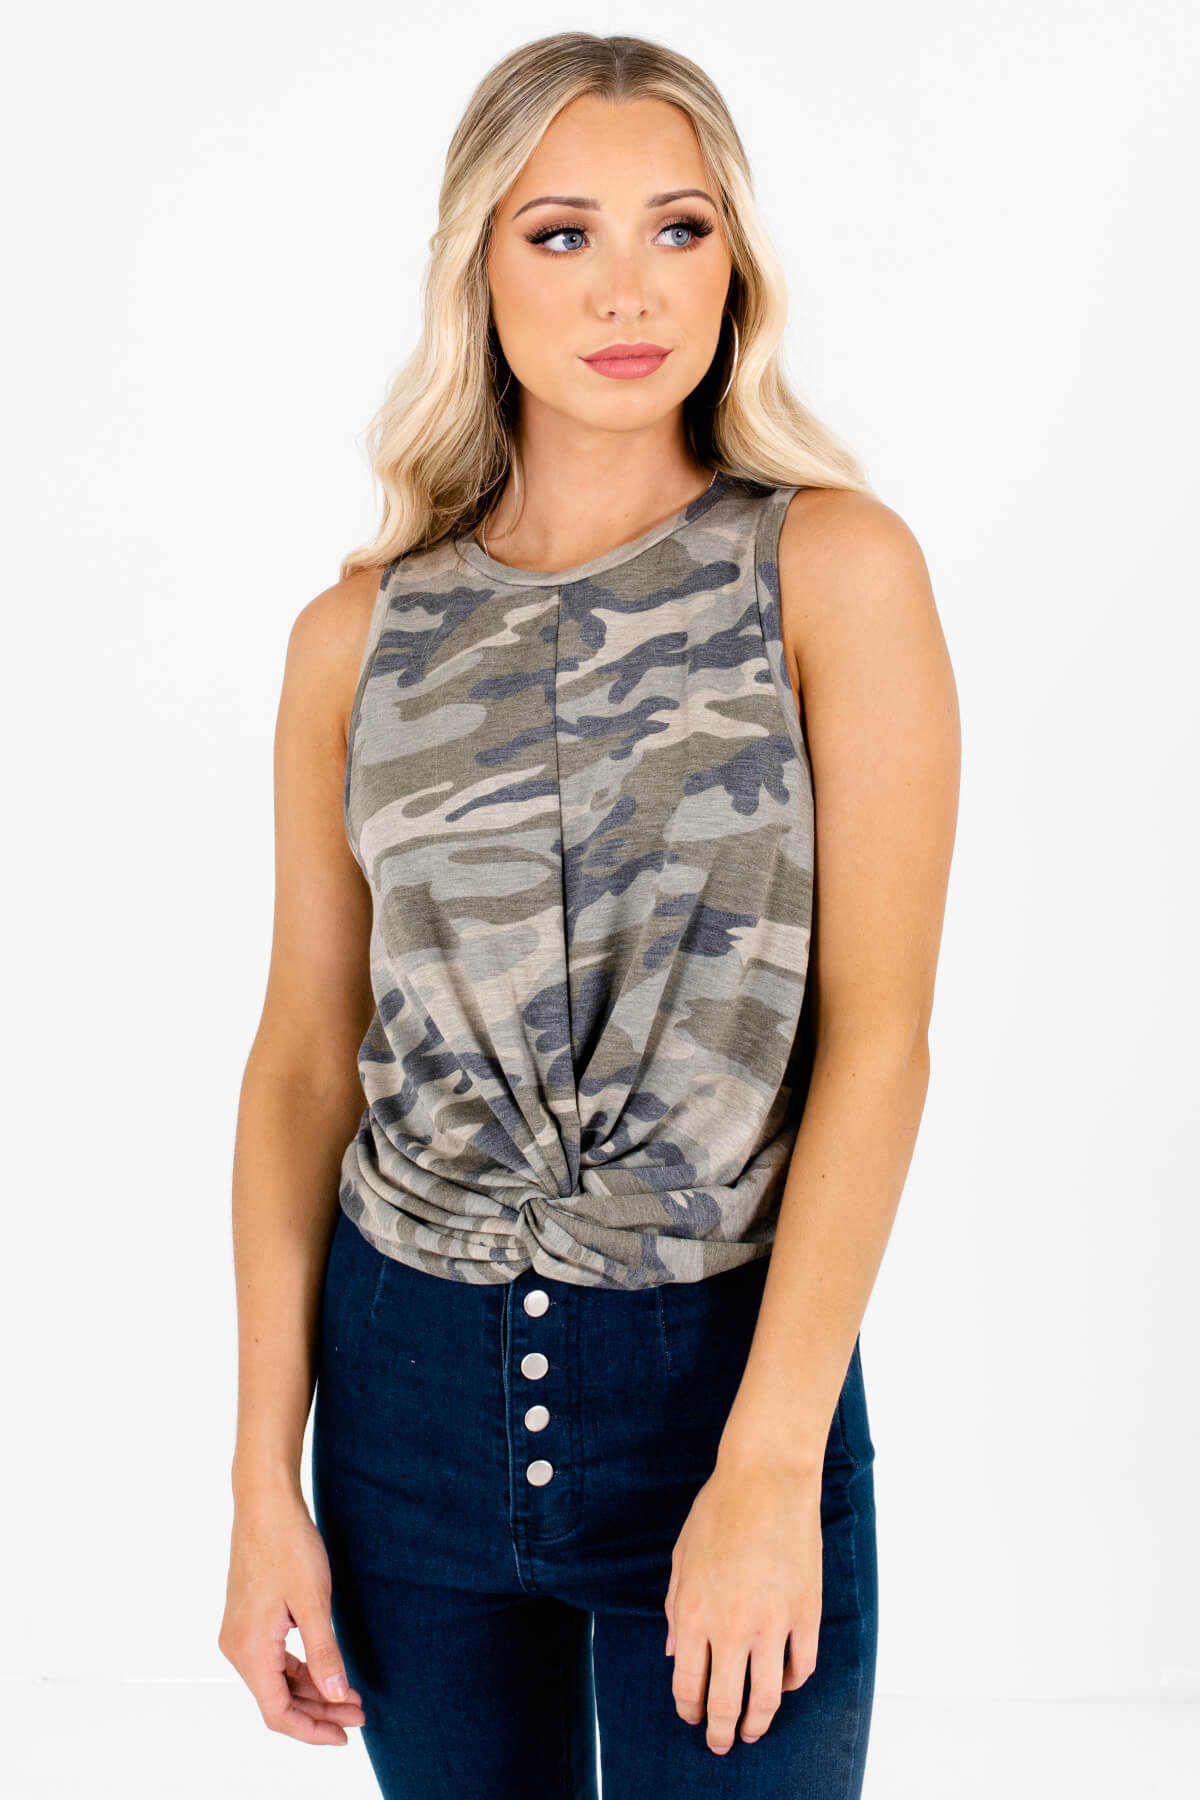 Green Camo Boutique Tank Tops for Women